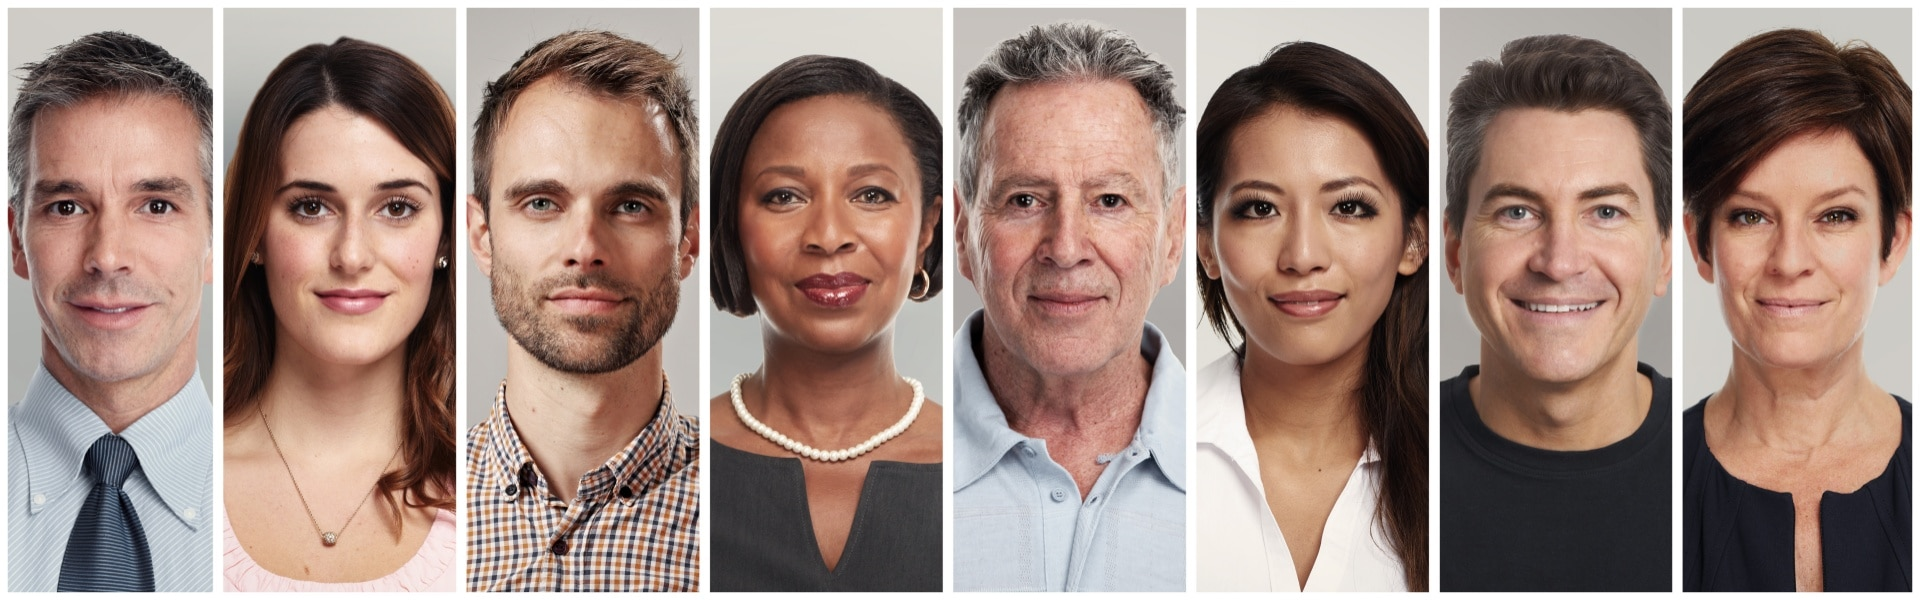 Client Personas for Financial Advisors